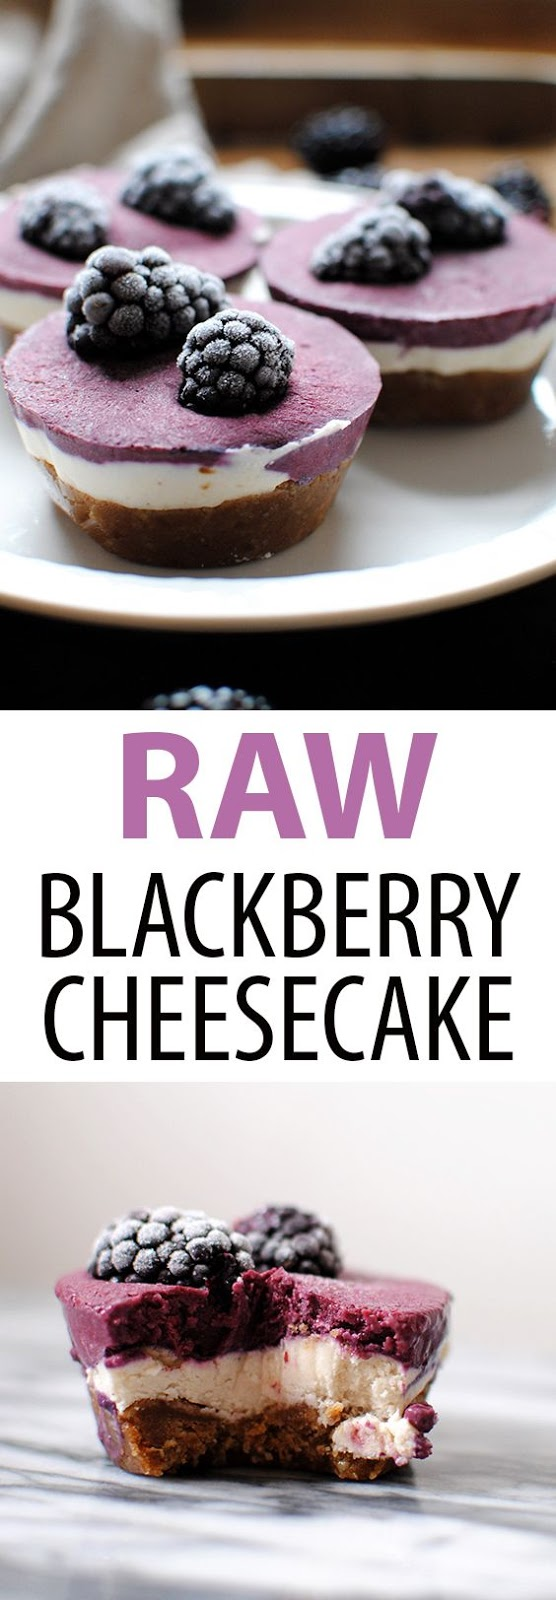 Raw Blackberry Cheesecakes